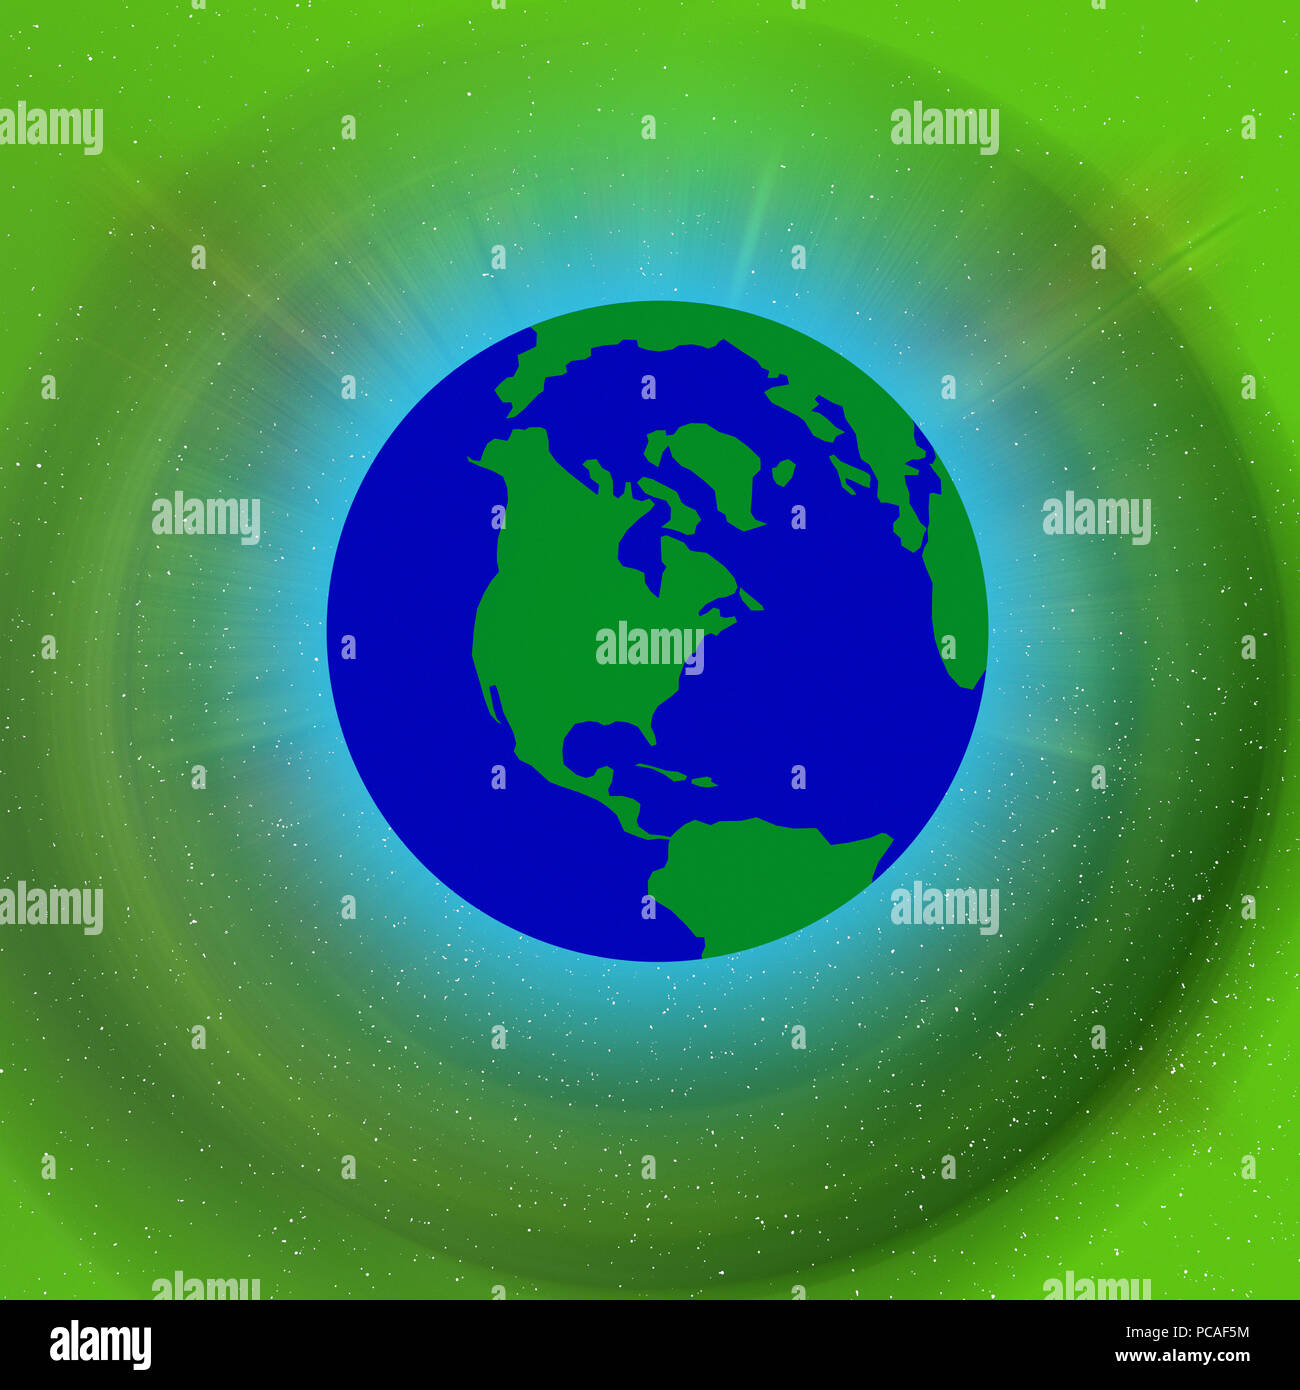 Earths atmosphere - Stock Image